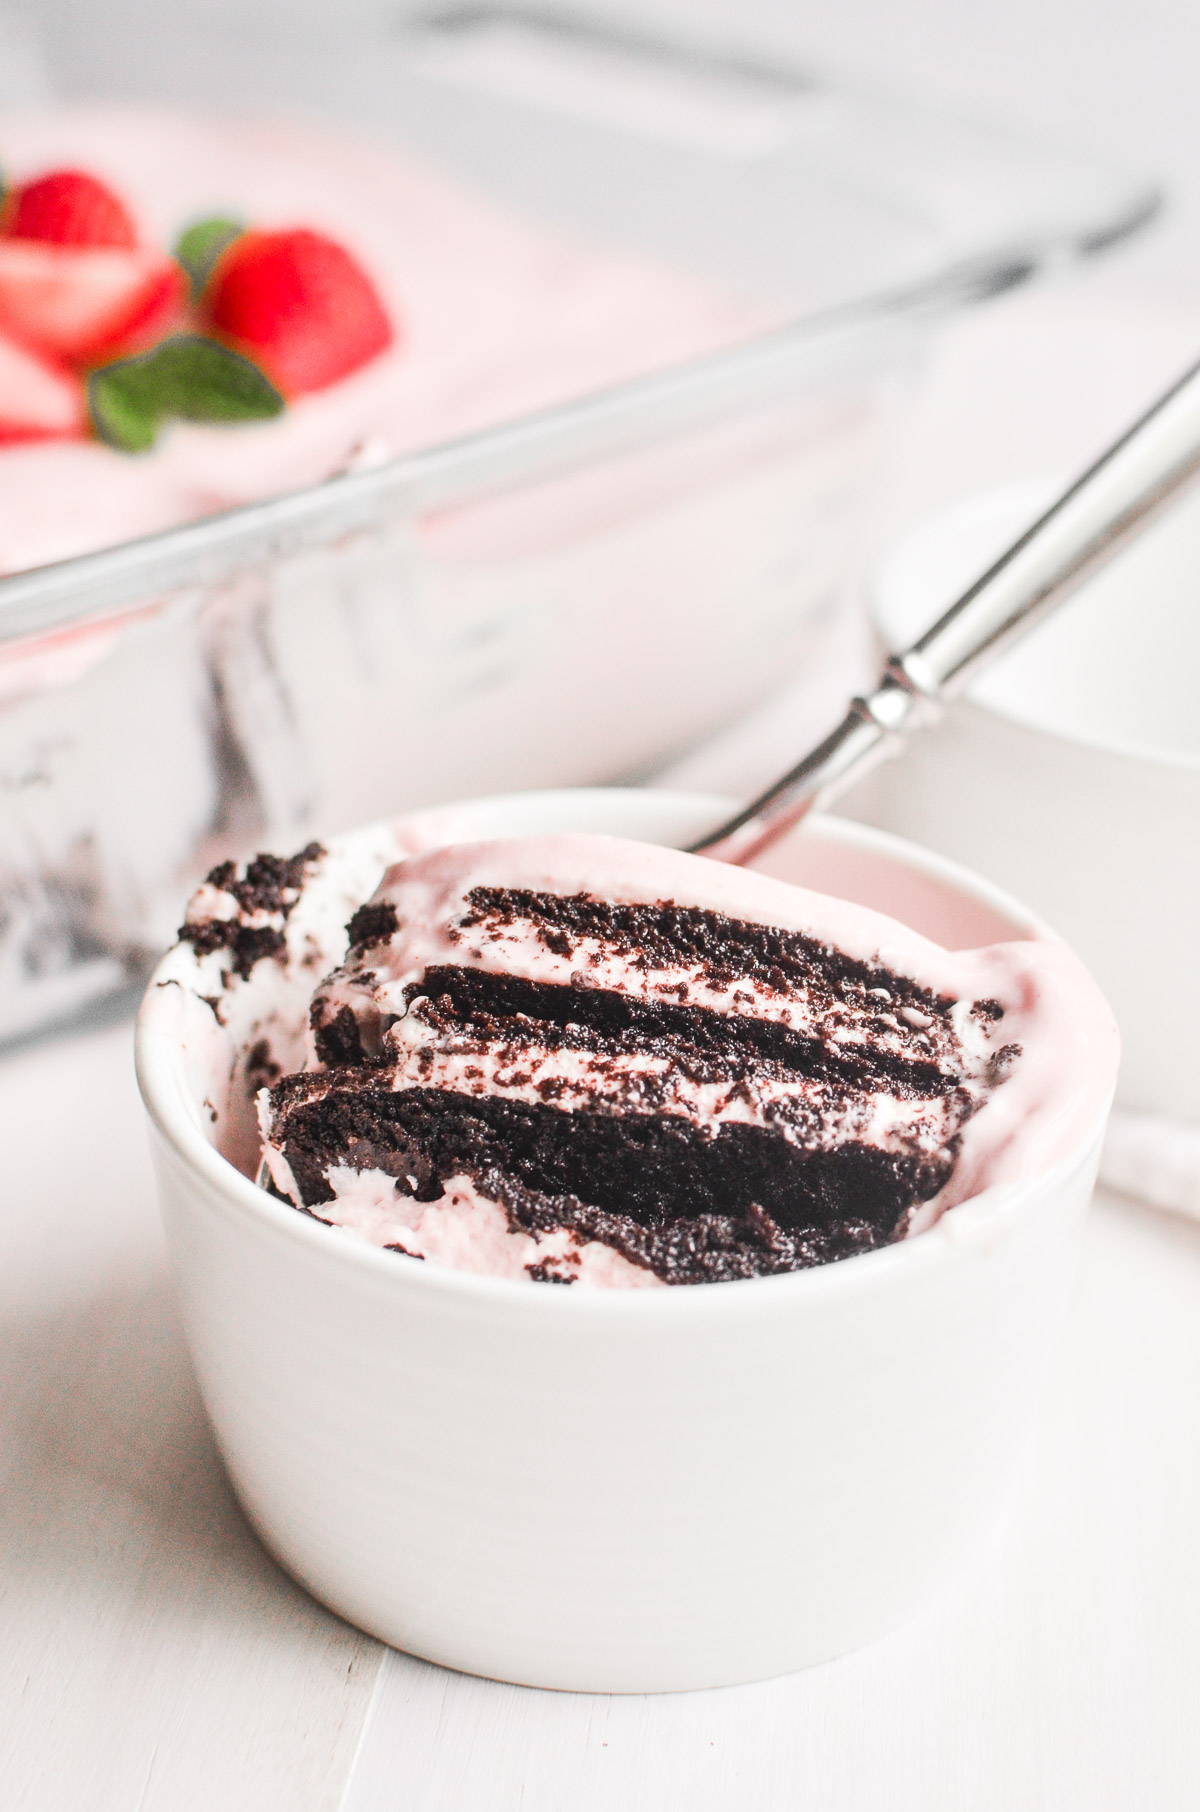 A serving of strawberry icebox cake in a white cup with a spoon.